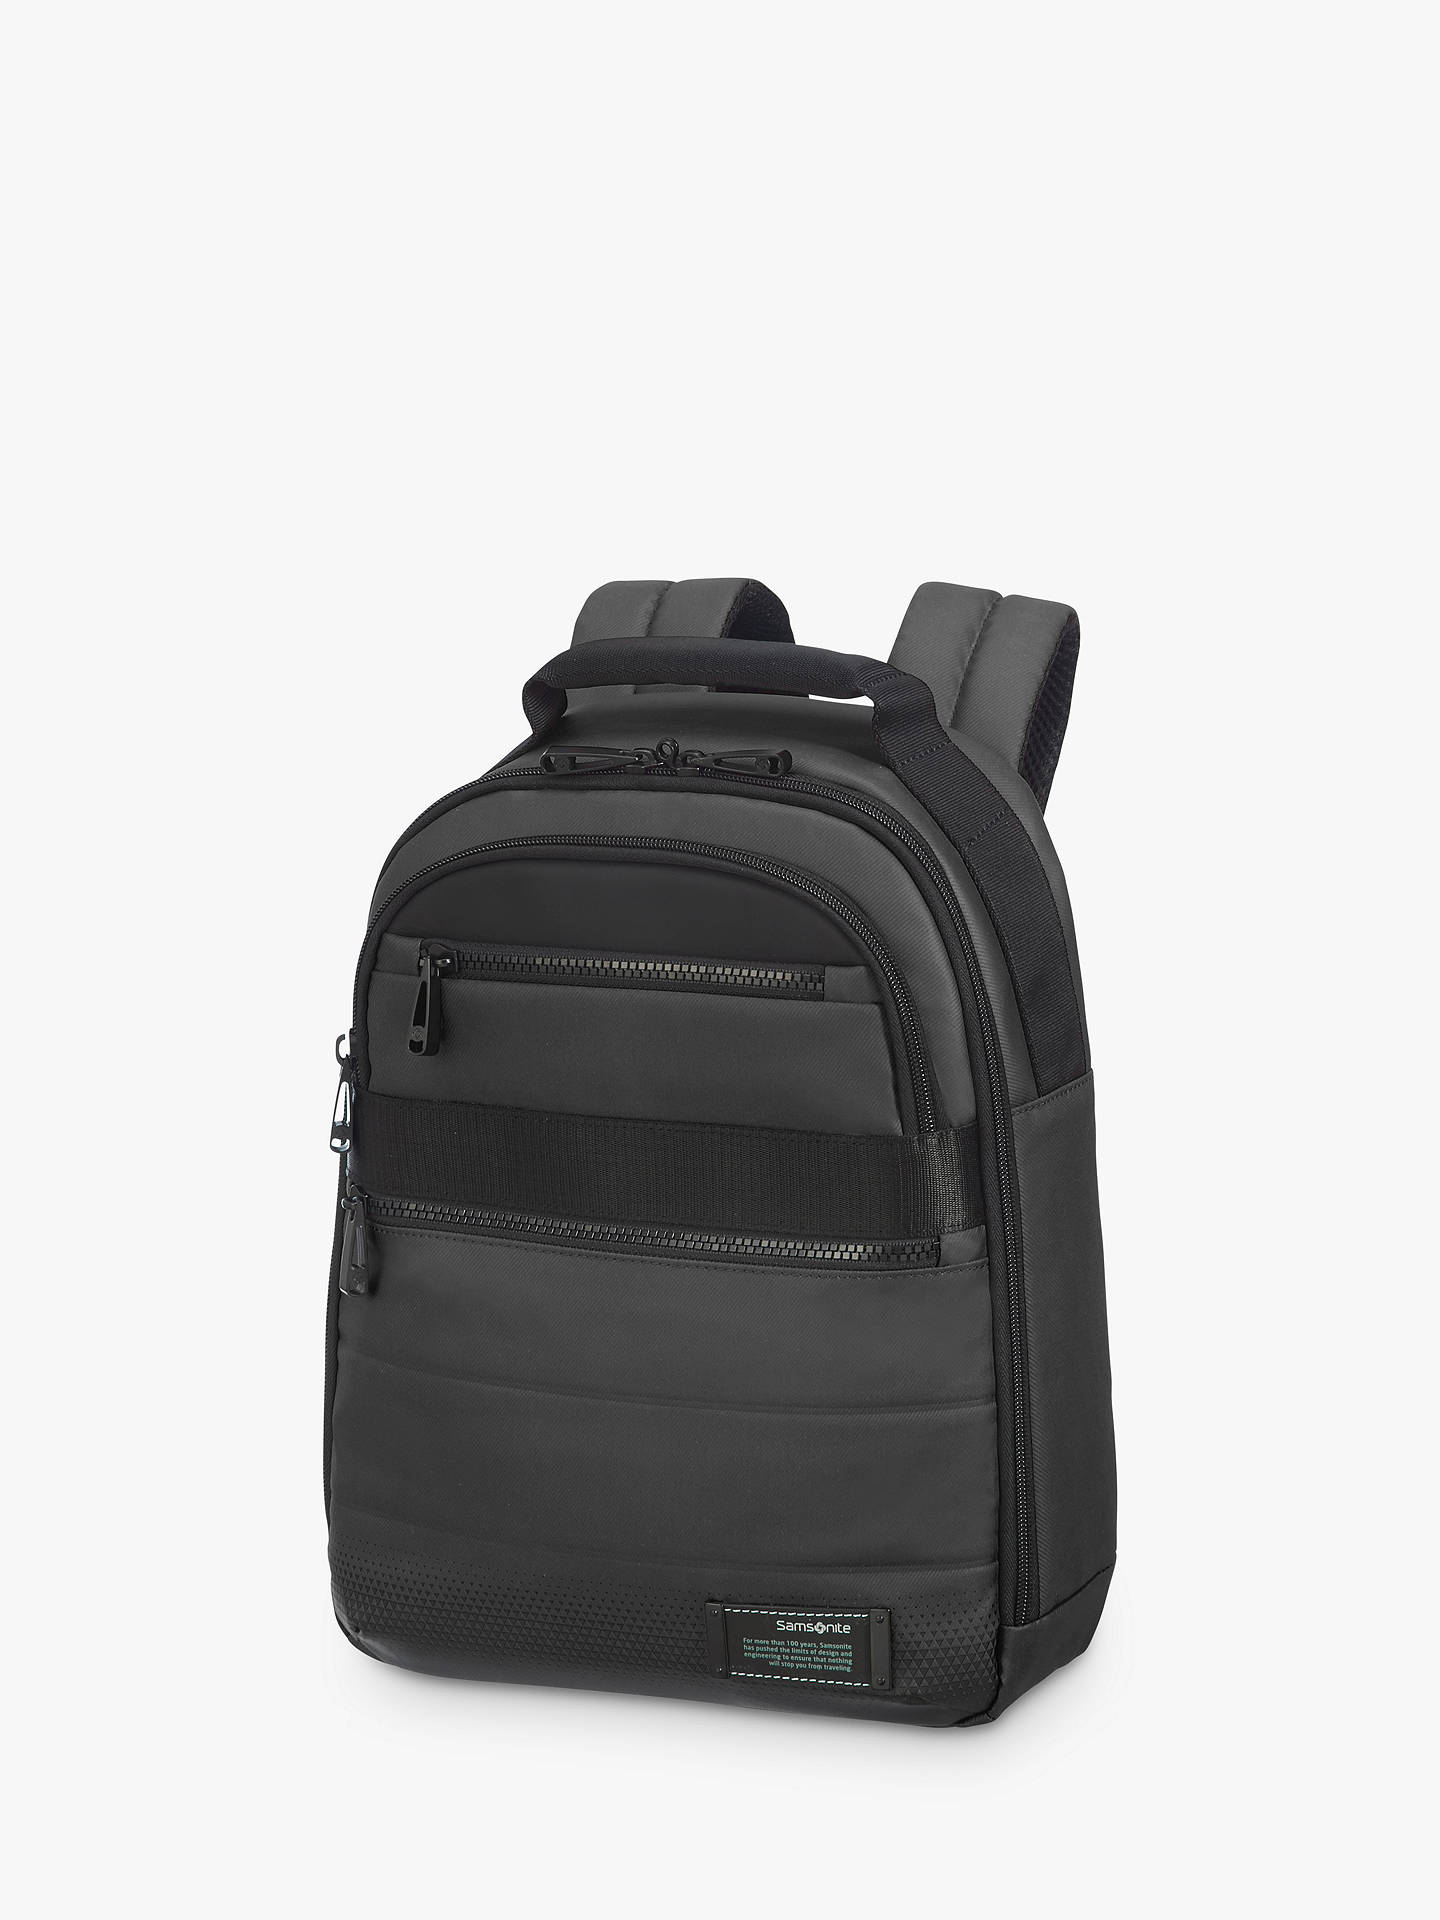 ee539ef0d2 Buy Samsonite Cityvibe 2.0 Small Backpack